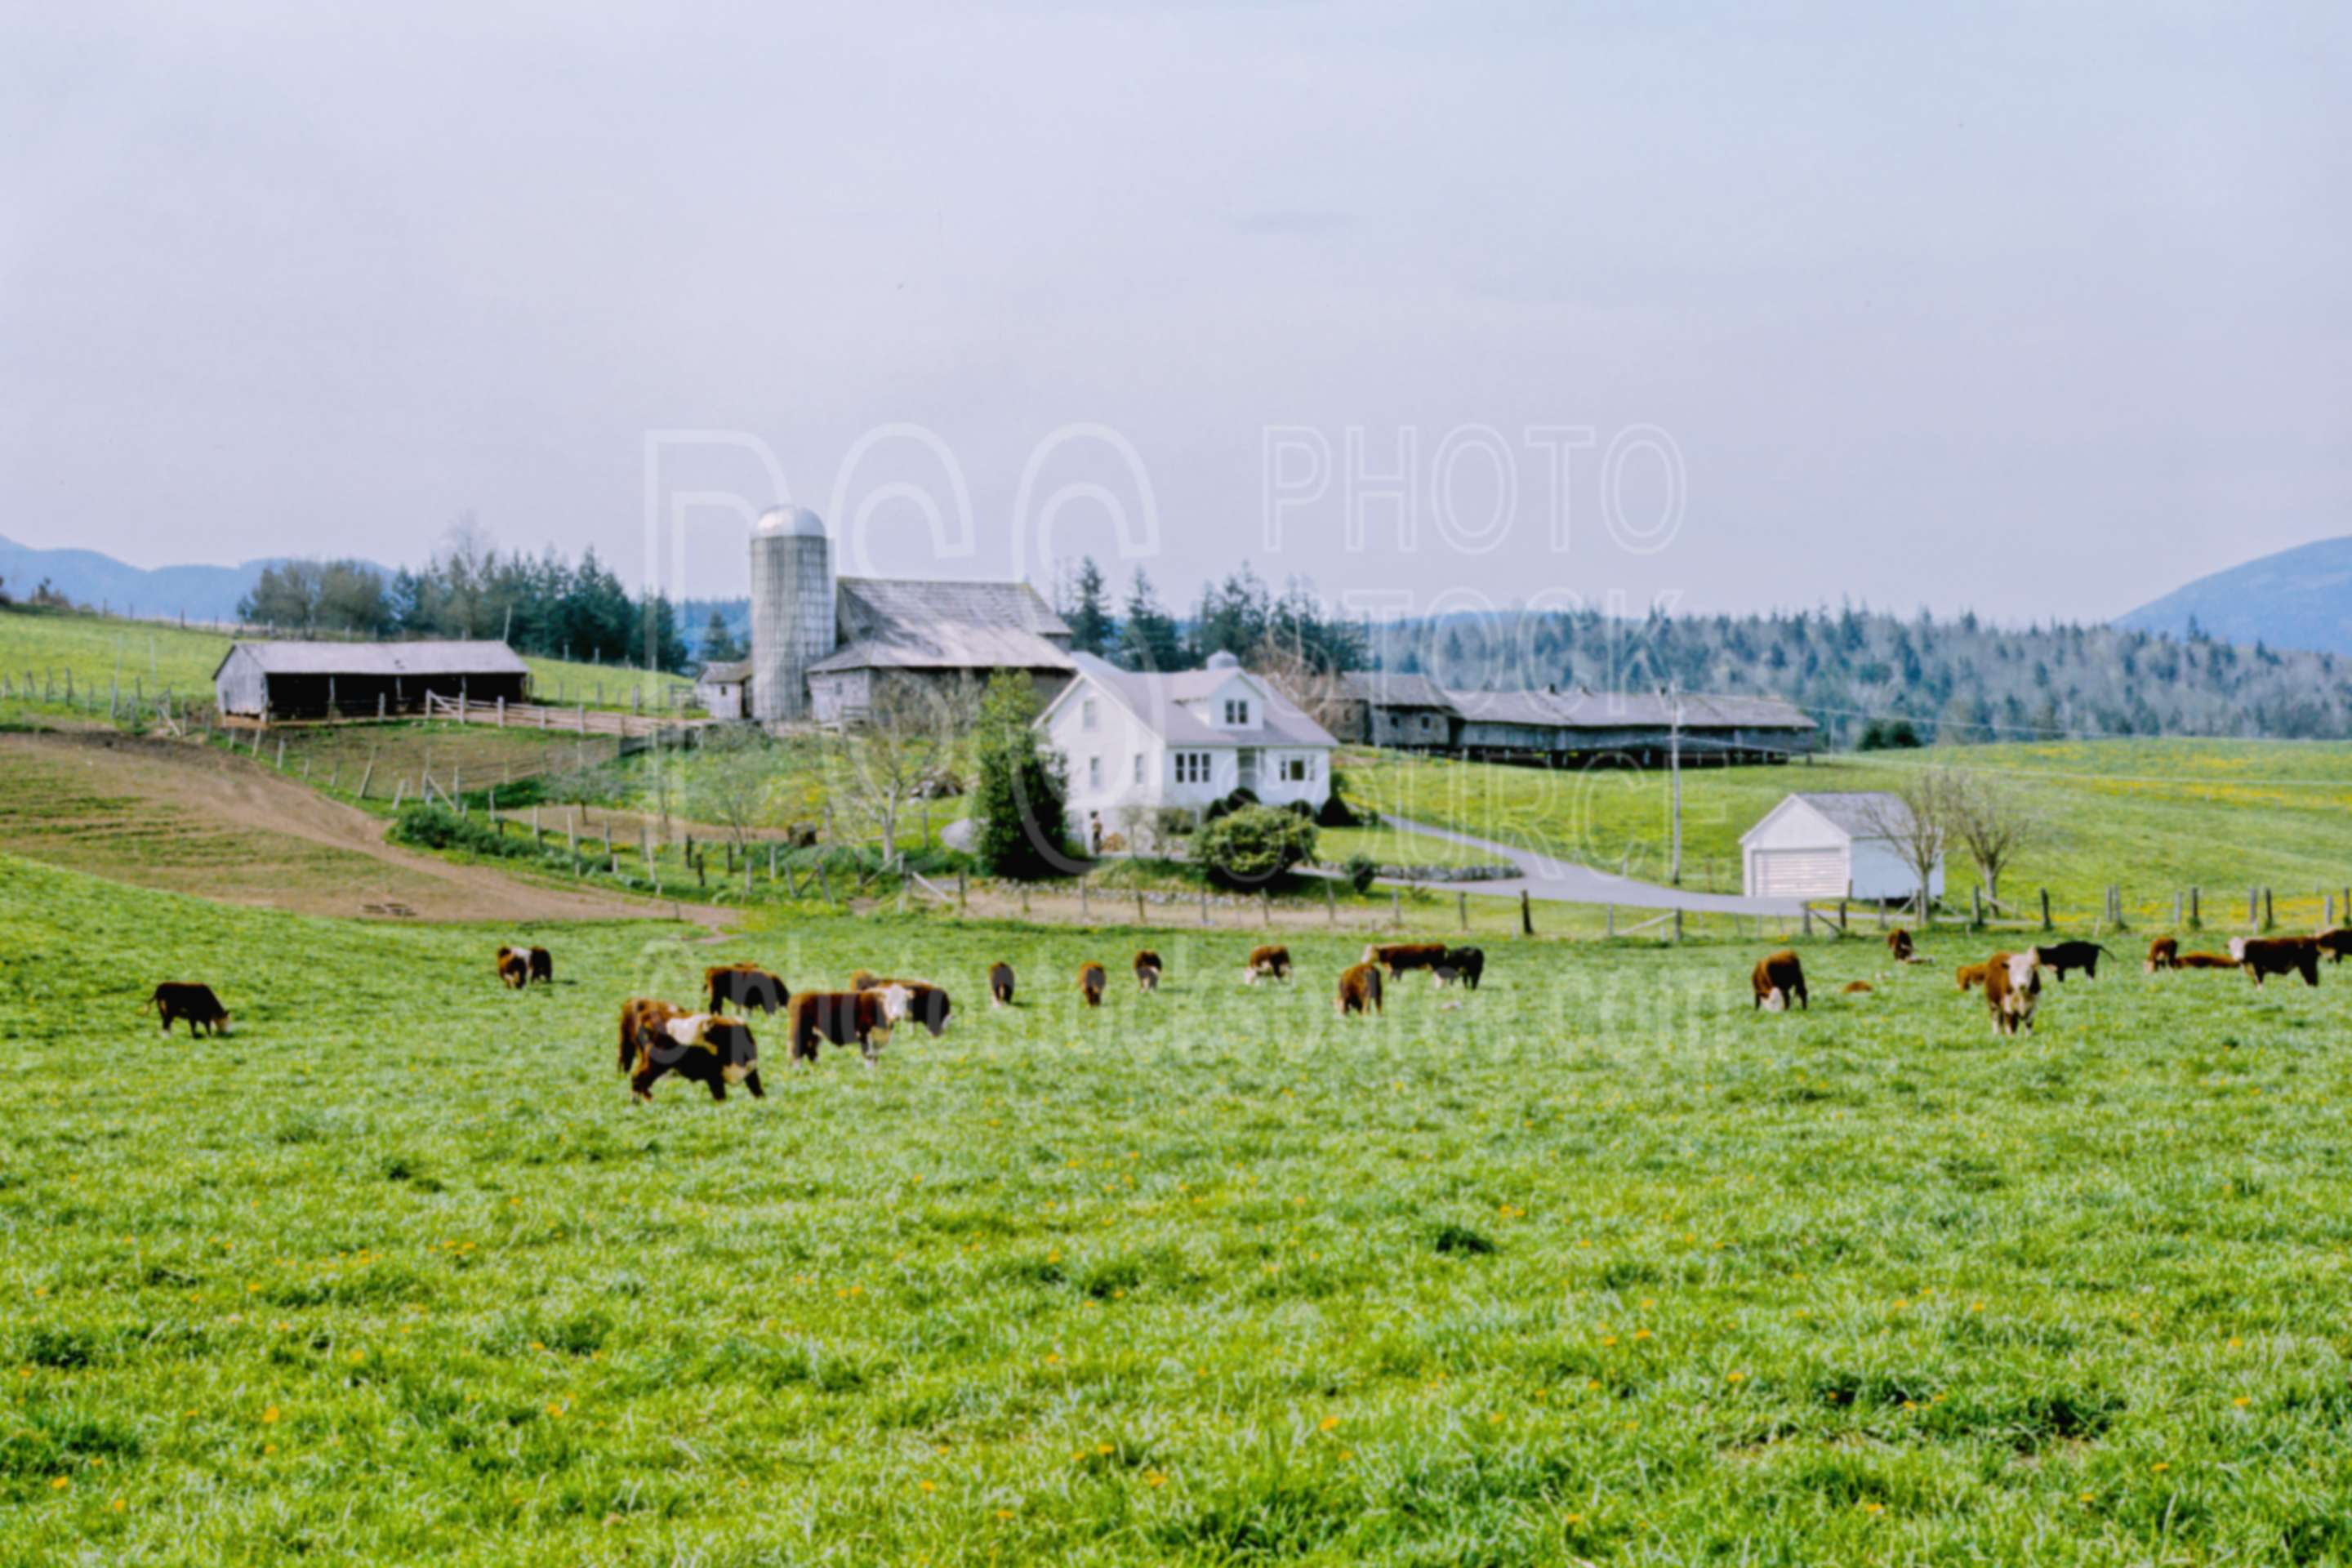 Dairy Farm,barn,cows,farm,field,house,silo,usas,barns,nature